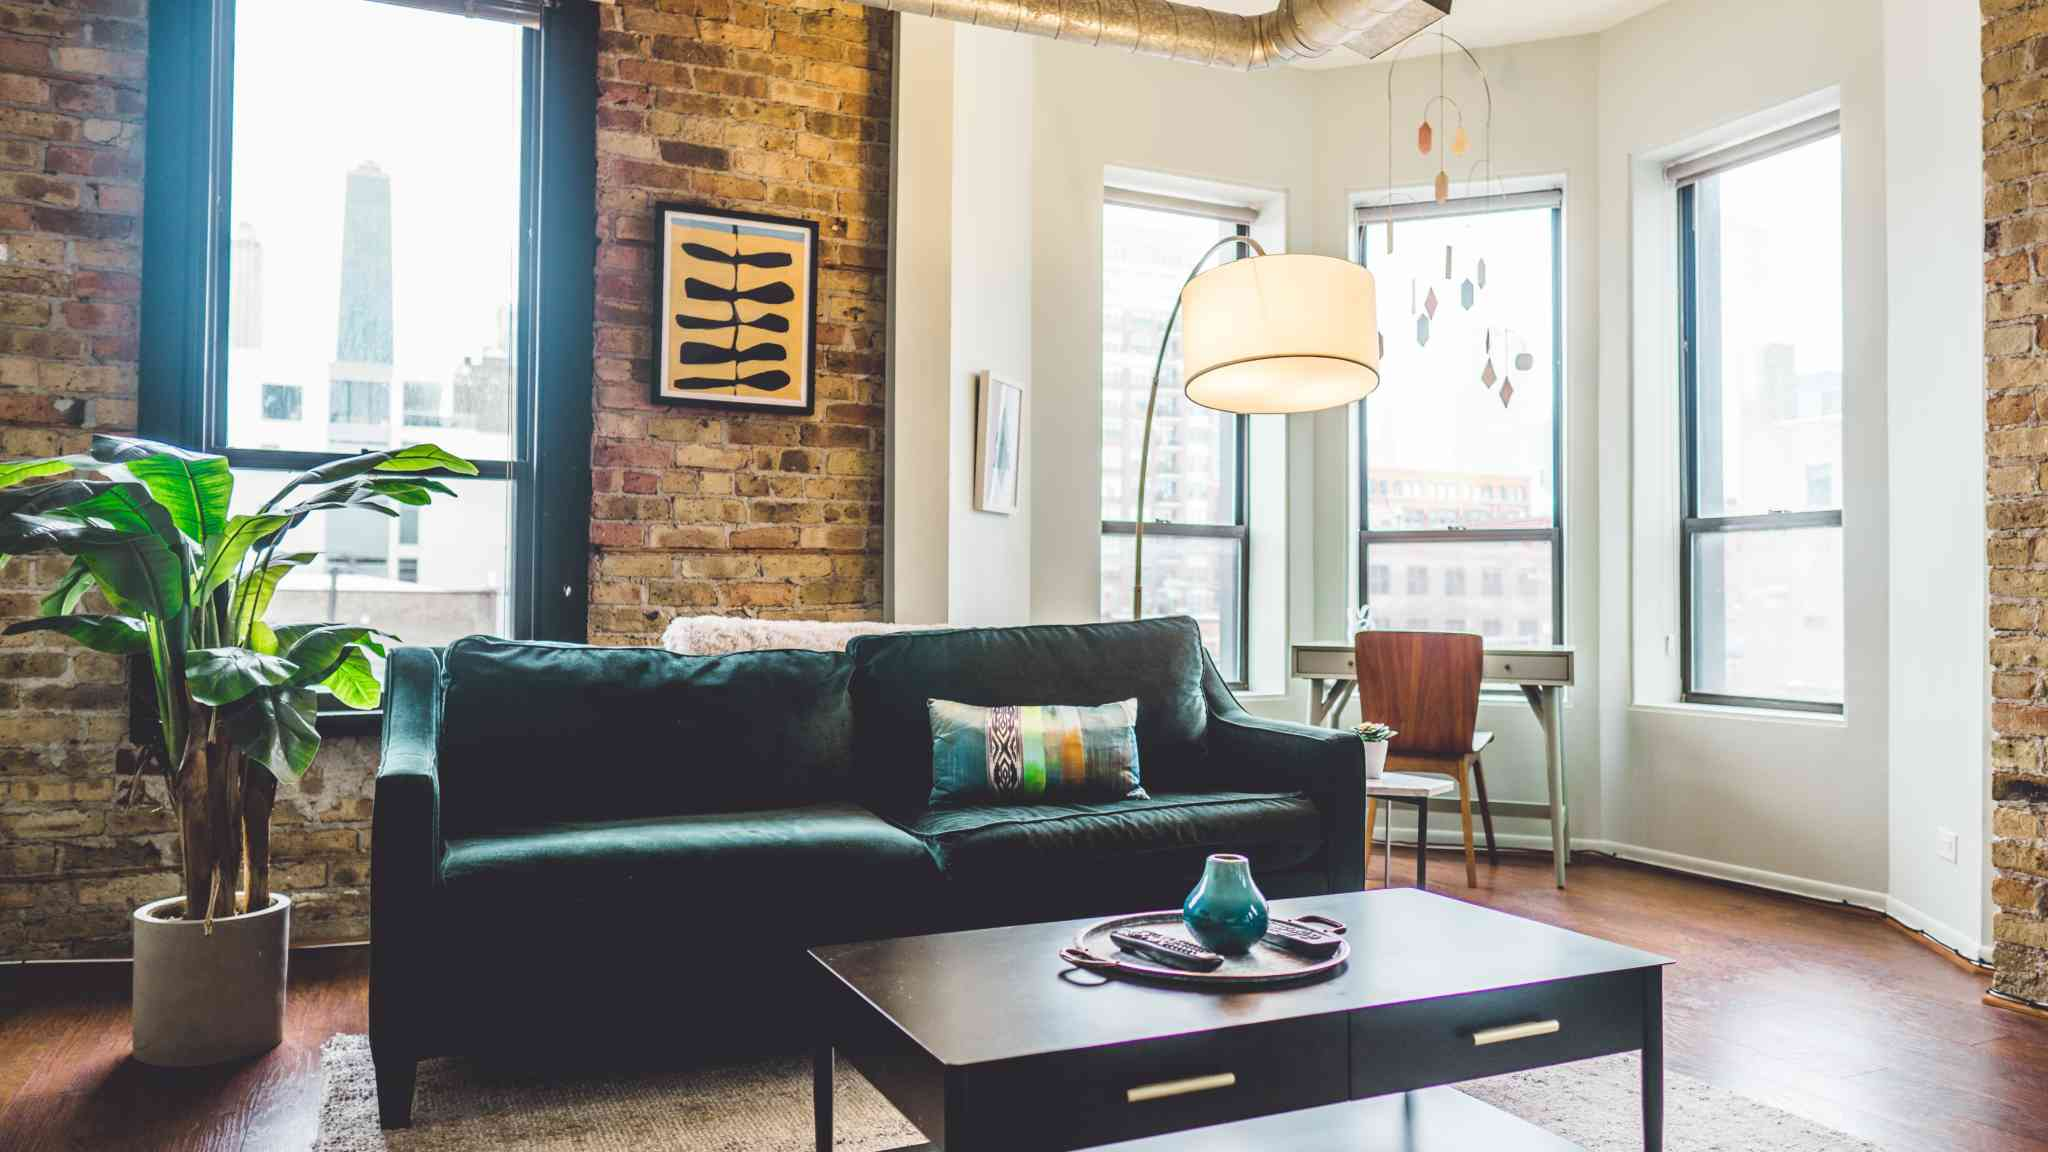 Check out our guide on what to buy new or used for your apartment.